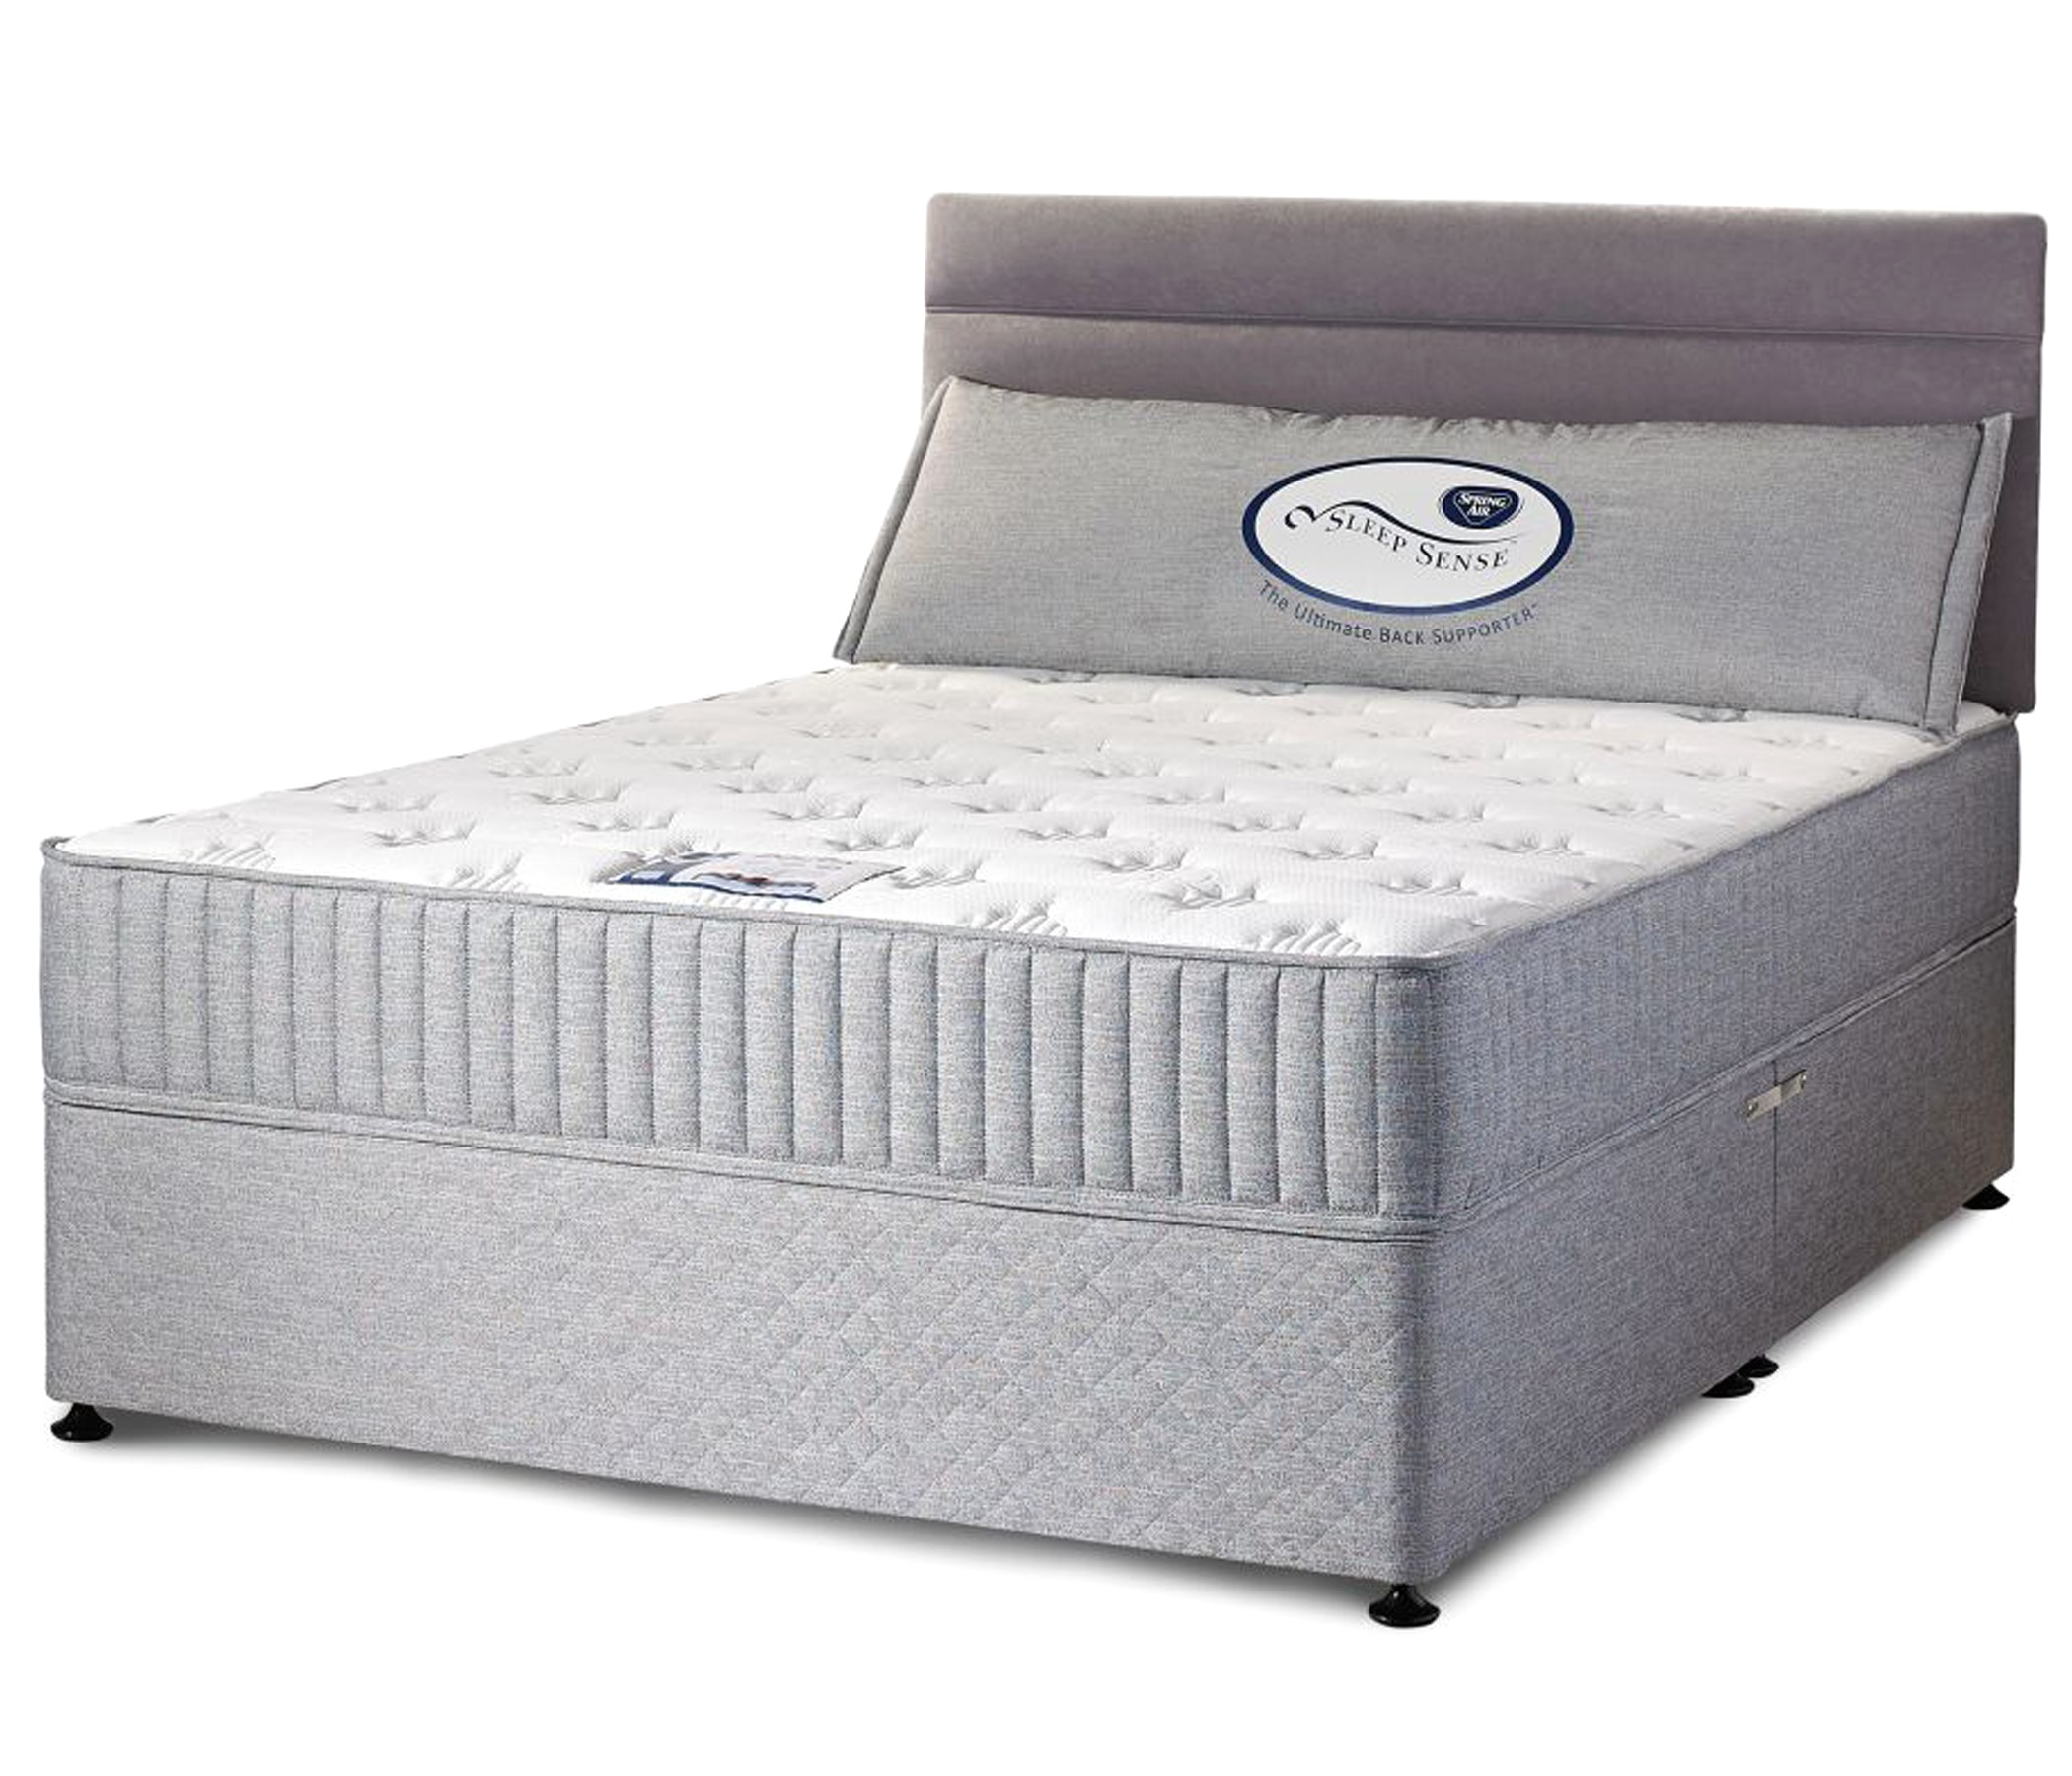 chattam and wells mattress prices beautiful chattam and wells lookup beforebuying king size